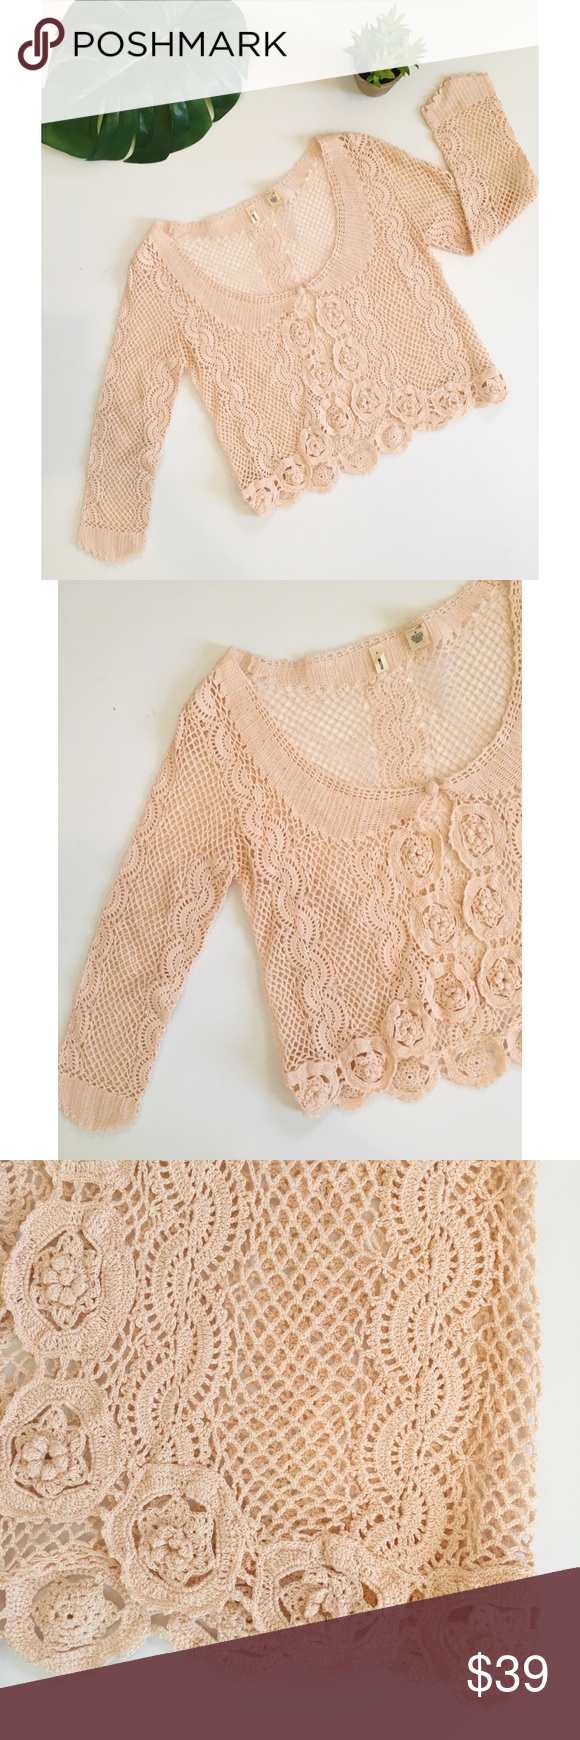 Anthropologie Moth Pink Crochet Lace Cardigan